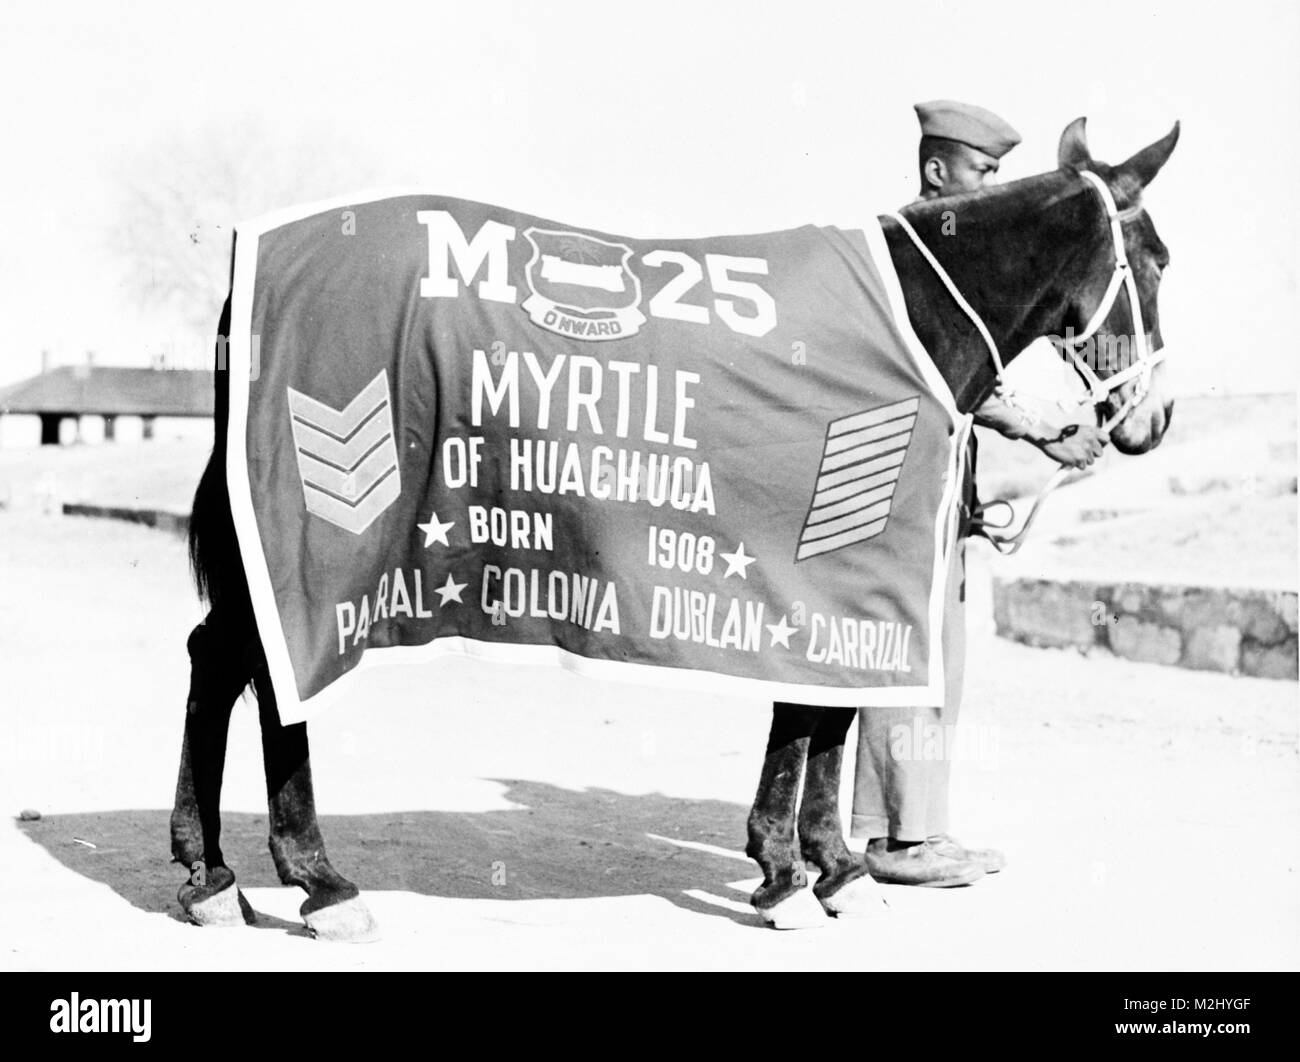 Buffalo Soldier Pack Mule, Myrtle - Stock Image